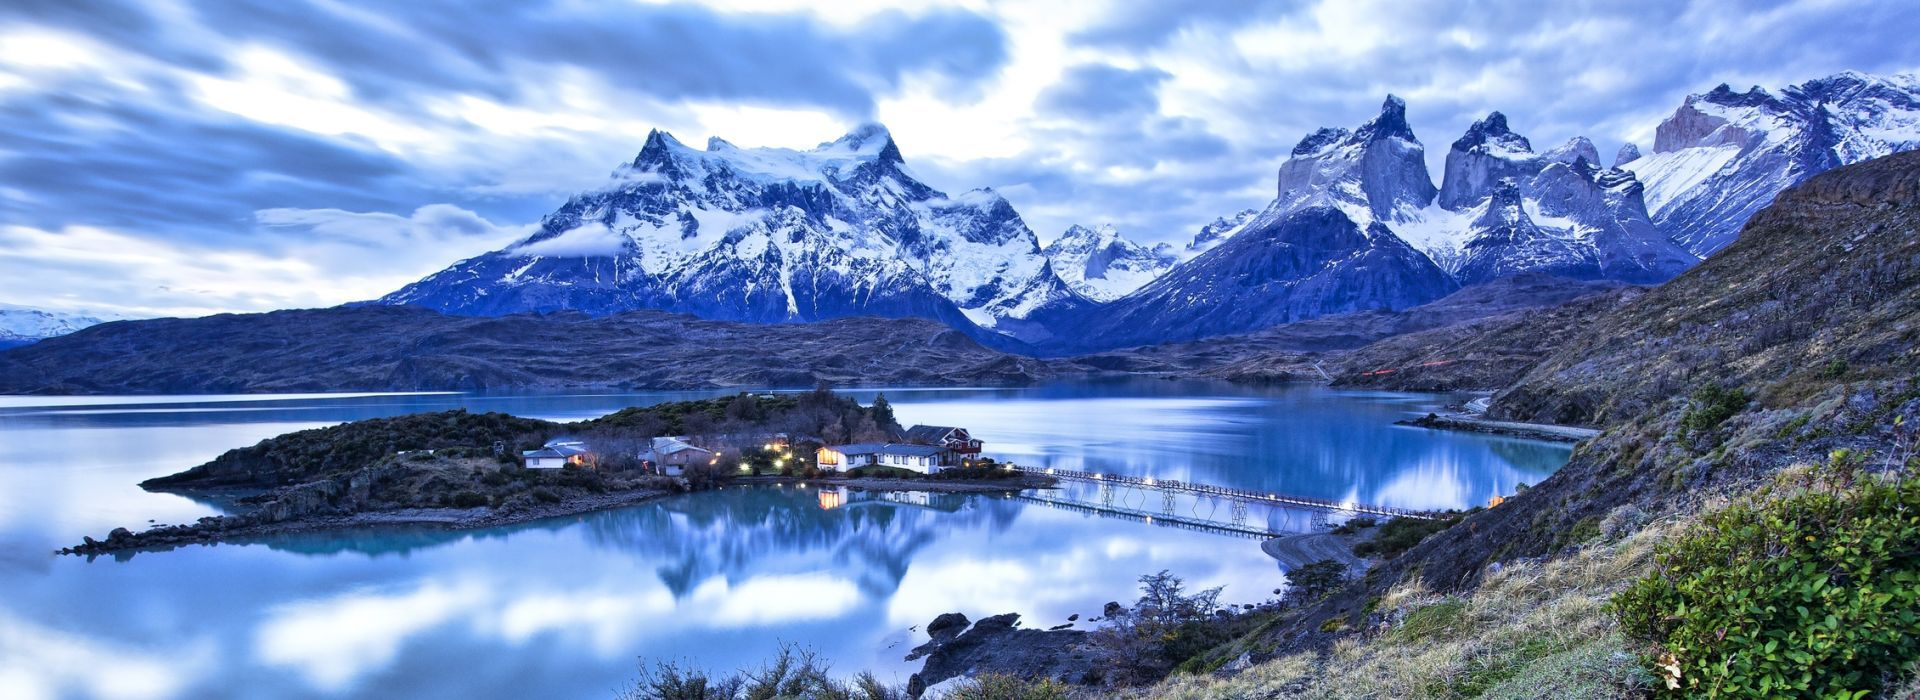 Hot springs Tours in Chile